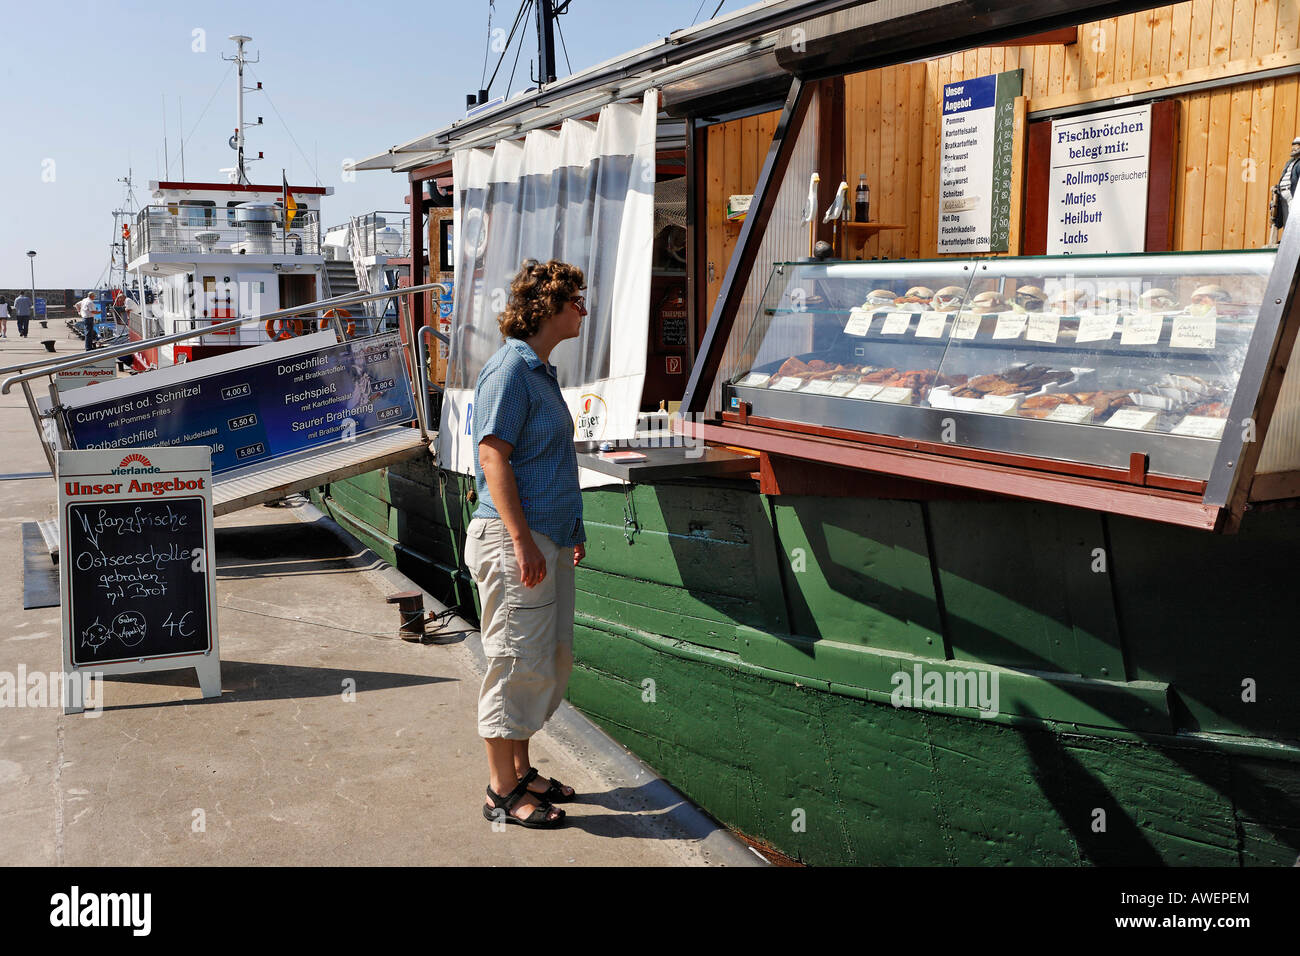 Seafood vendor and bistro on a boat, Sassnitz, Ruegen, Germany, Europe Stock Photo